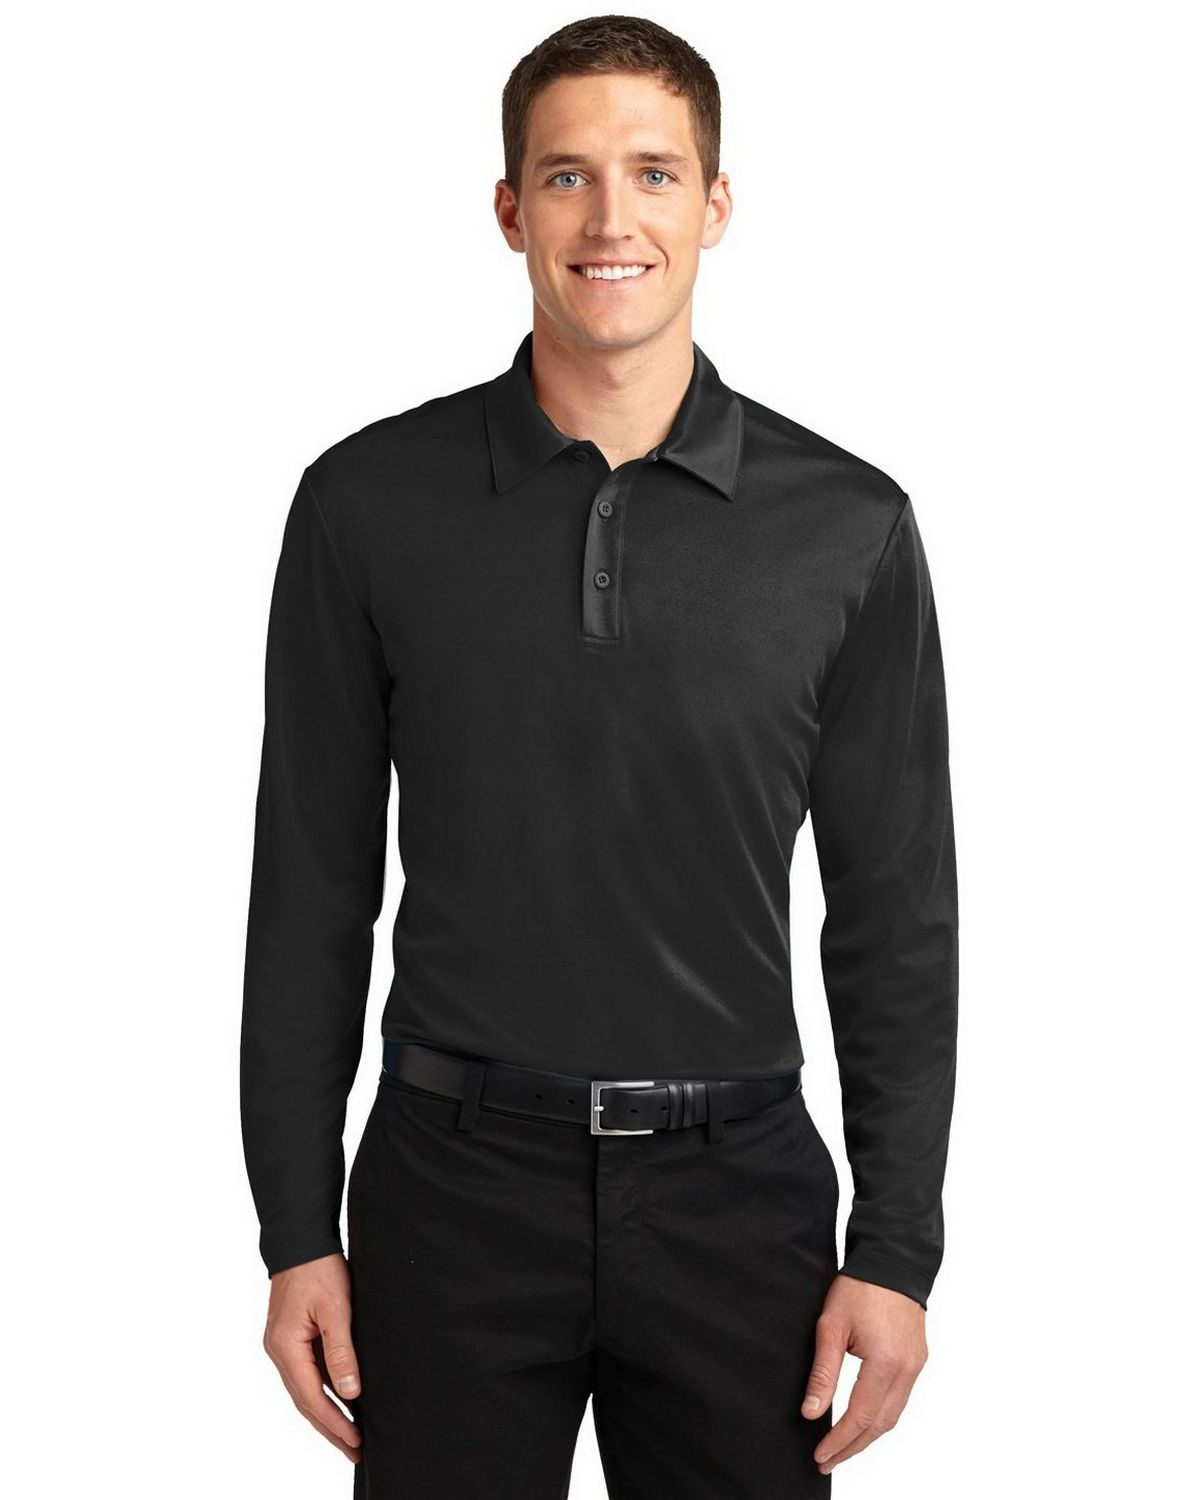 Port Authority K540LS Men's Silk Touch Performance Polo - Black - XS #silk